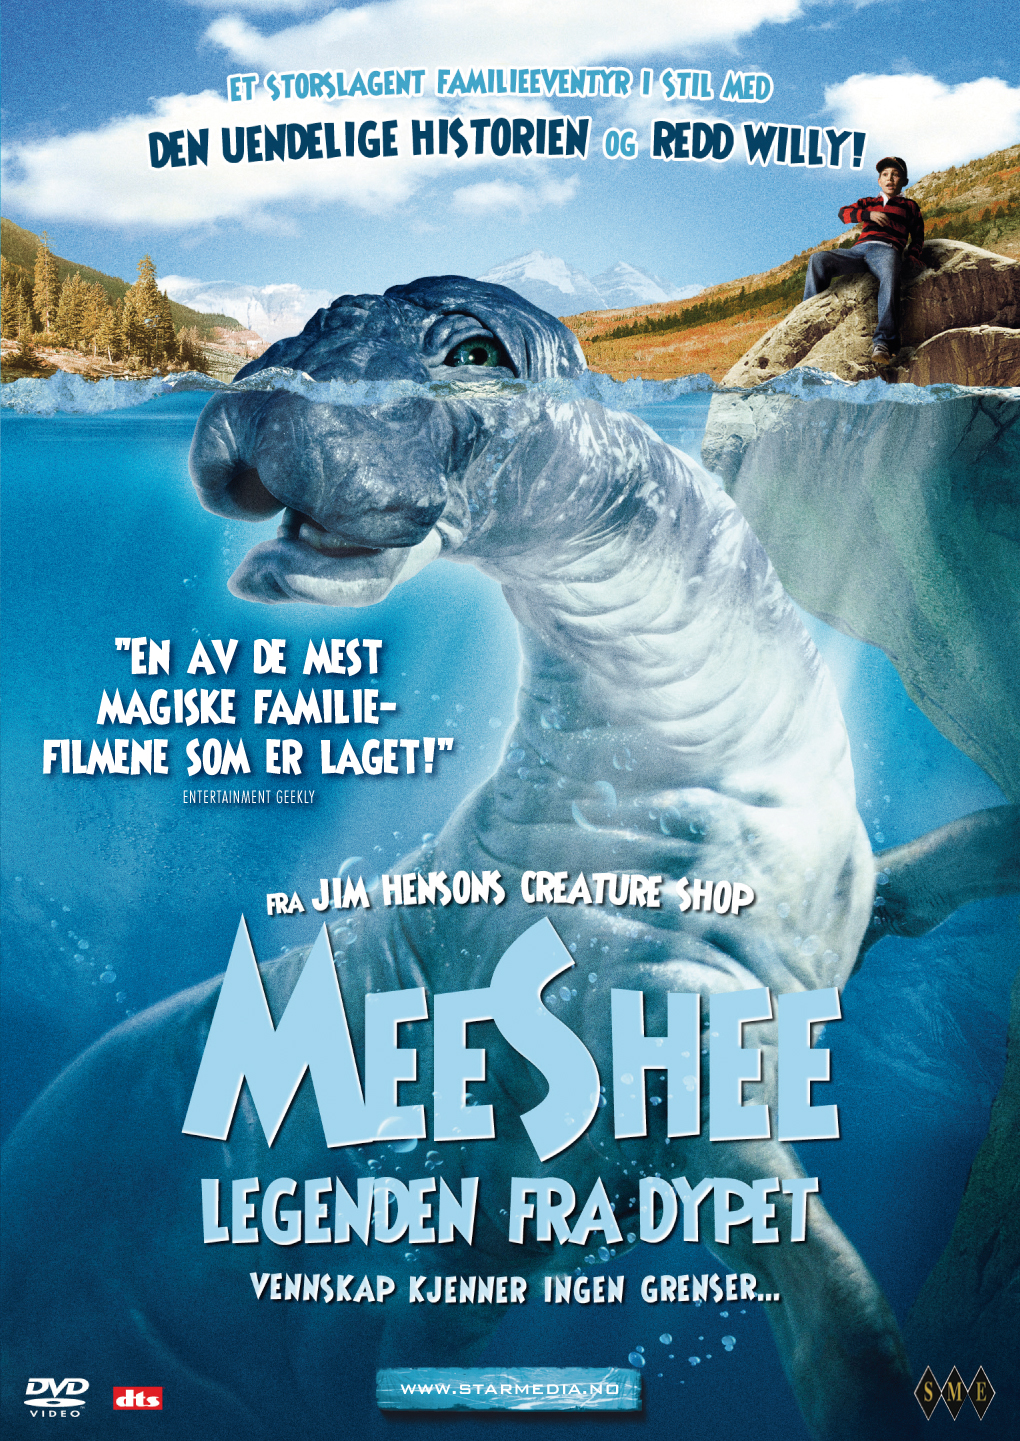 Mee shee - Music Production/Recording